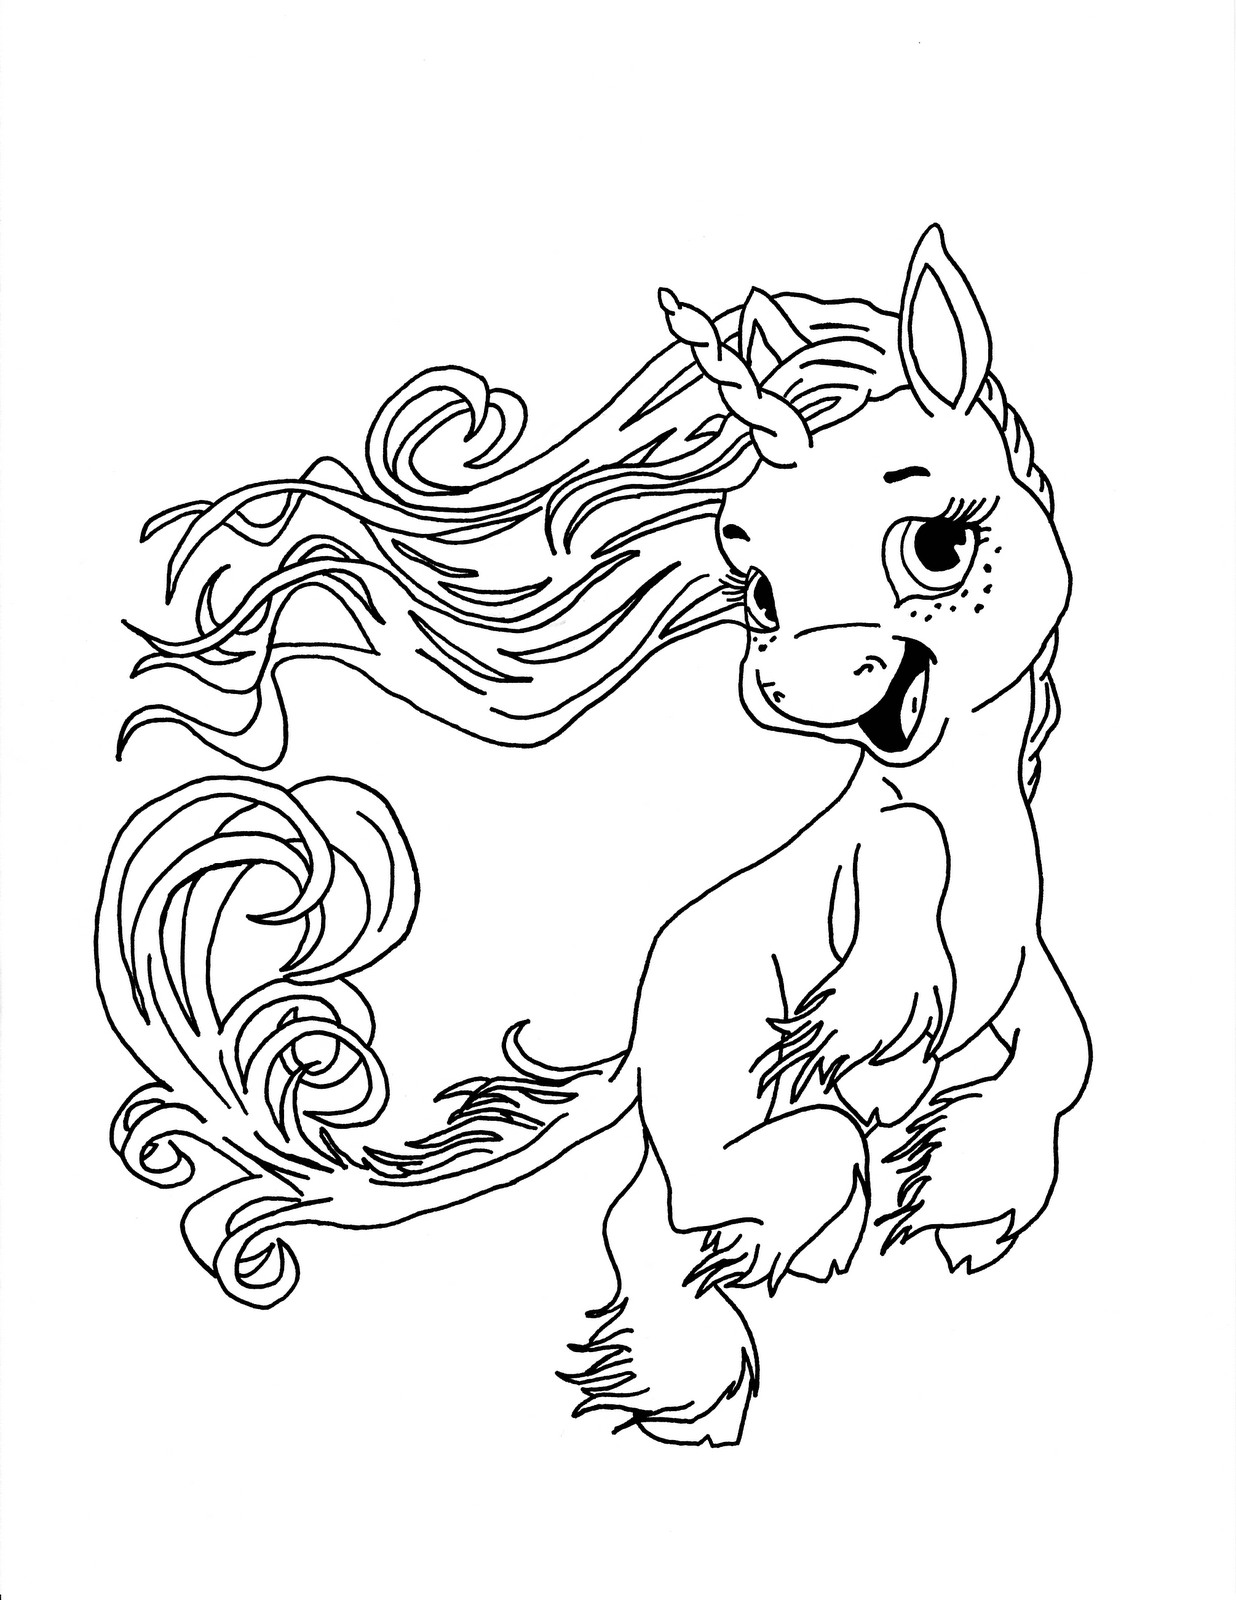 Unicorn Color Pages for Children  Unicorn coloring pages, Horse